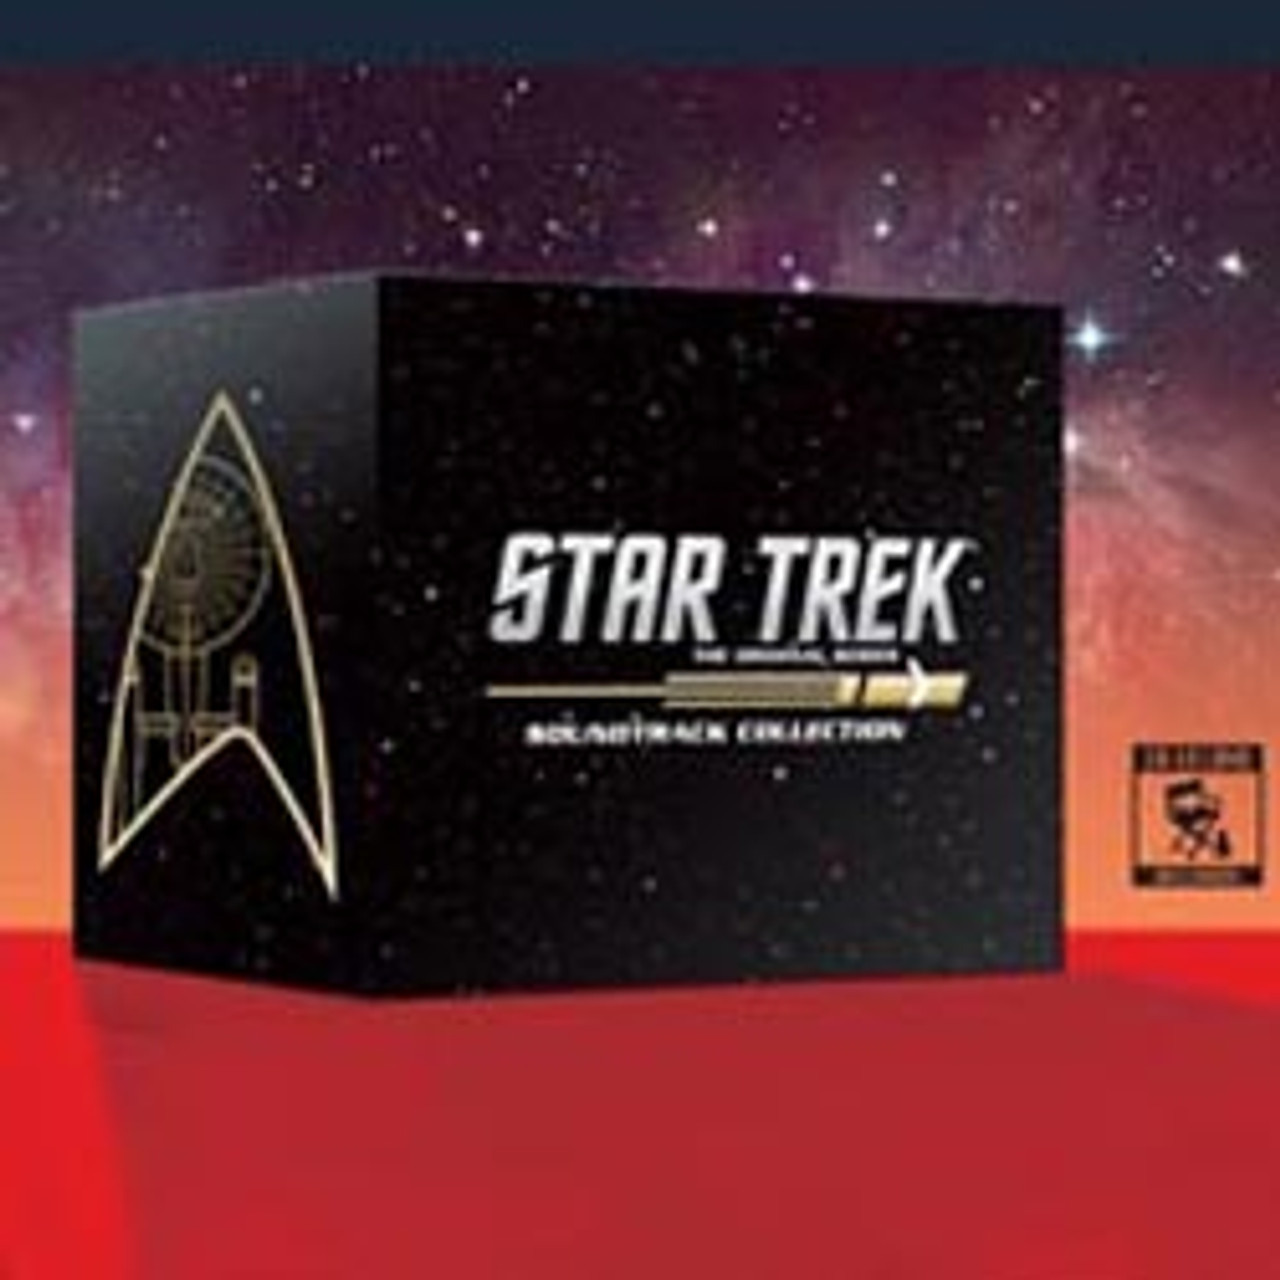 STAR TREK: THE ORIGINAL SERIES SOUNDTRACK COLLECTION: LIMITED EDITION -  (15-CD BOX SET)